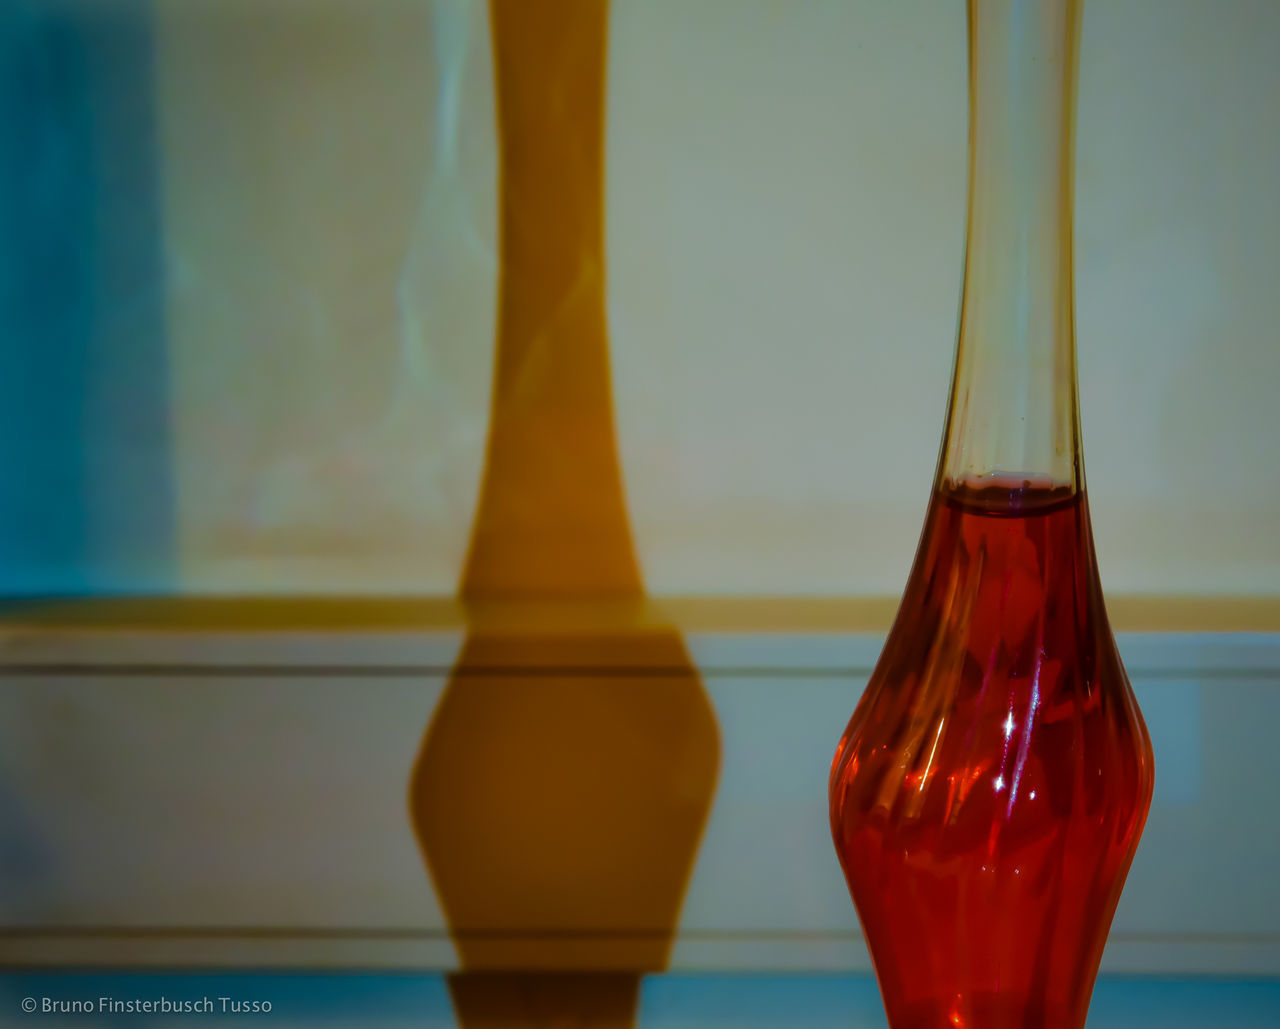 red and shadow Blue Bottle Bottles Close-up Editorial  Eye4photography  EyeEm EyeEm Best Shots EyeEm Gallery EyeEmBestPics Focus On Foreground Liquid Multi Colored No People Photo Photograph Photographer Photography Photooftheday Photos Photoshoot Red Red Selective Focus Shadow